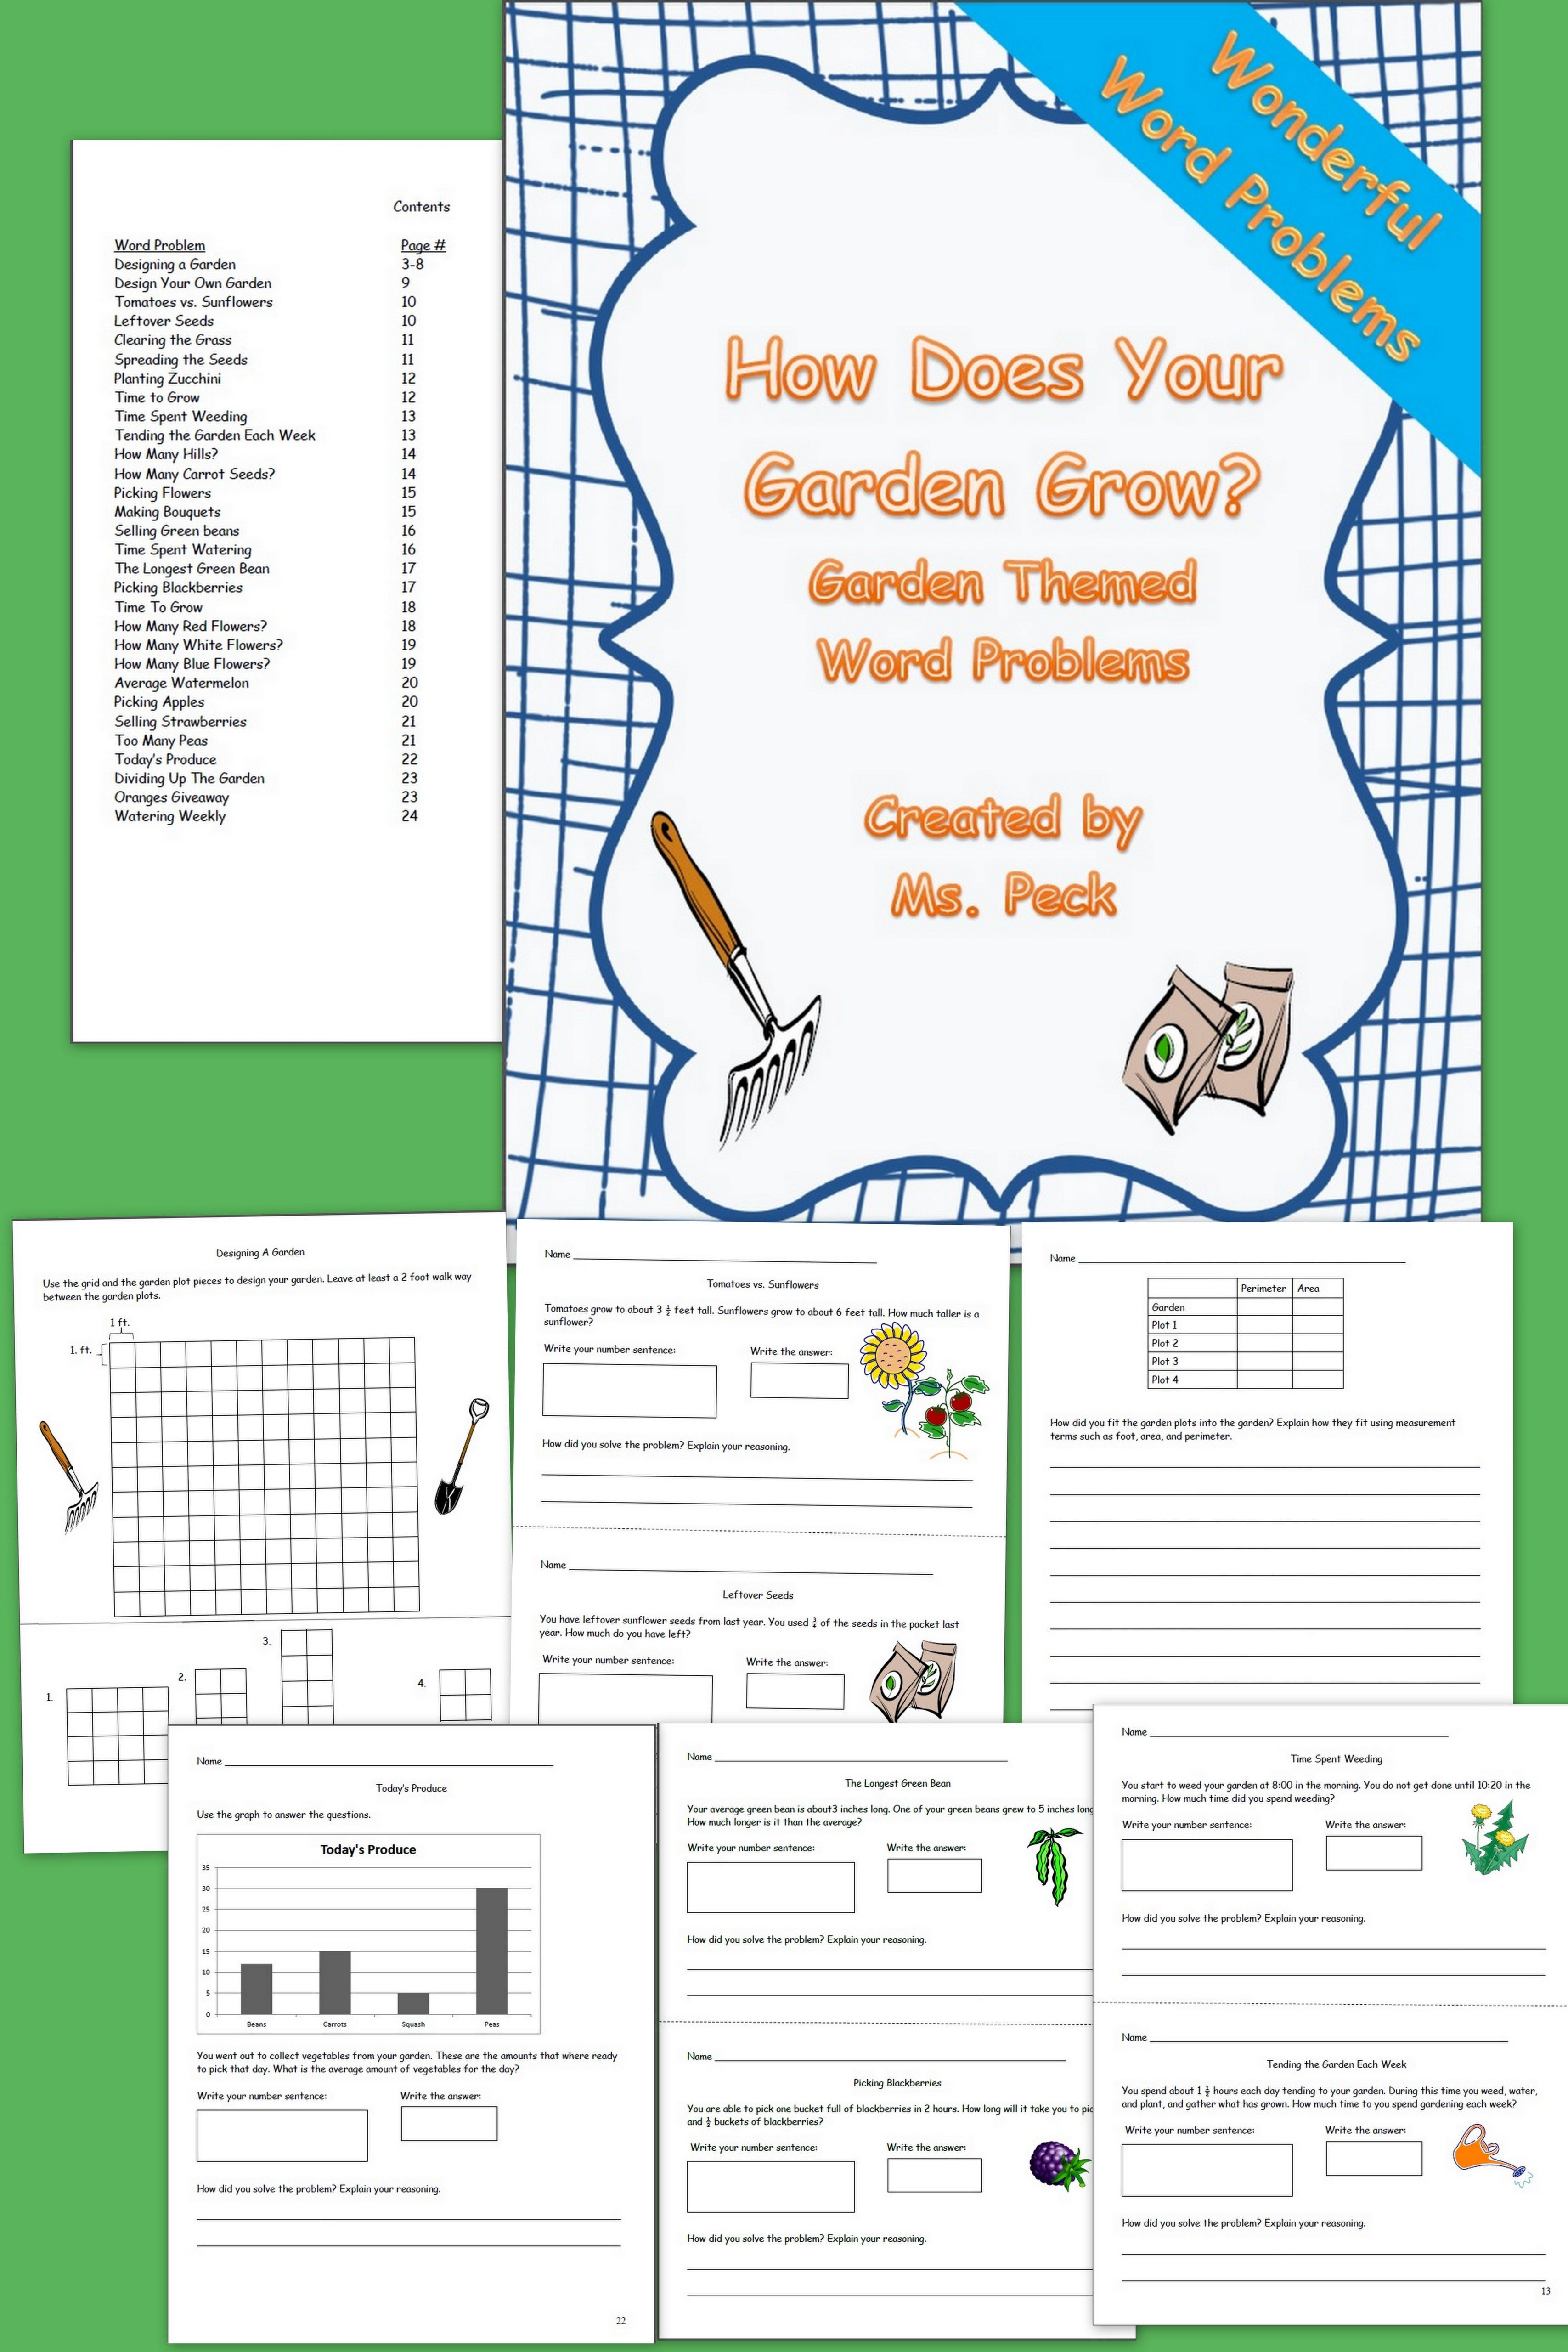 Garden Themed Word Problems Includes Practices In Area